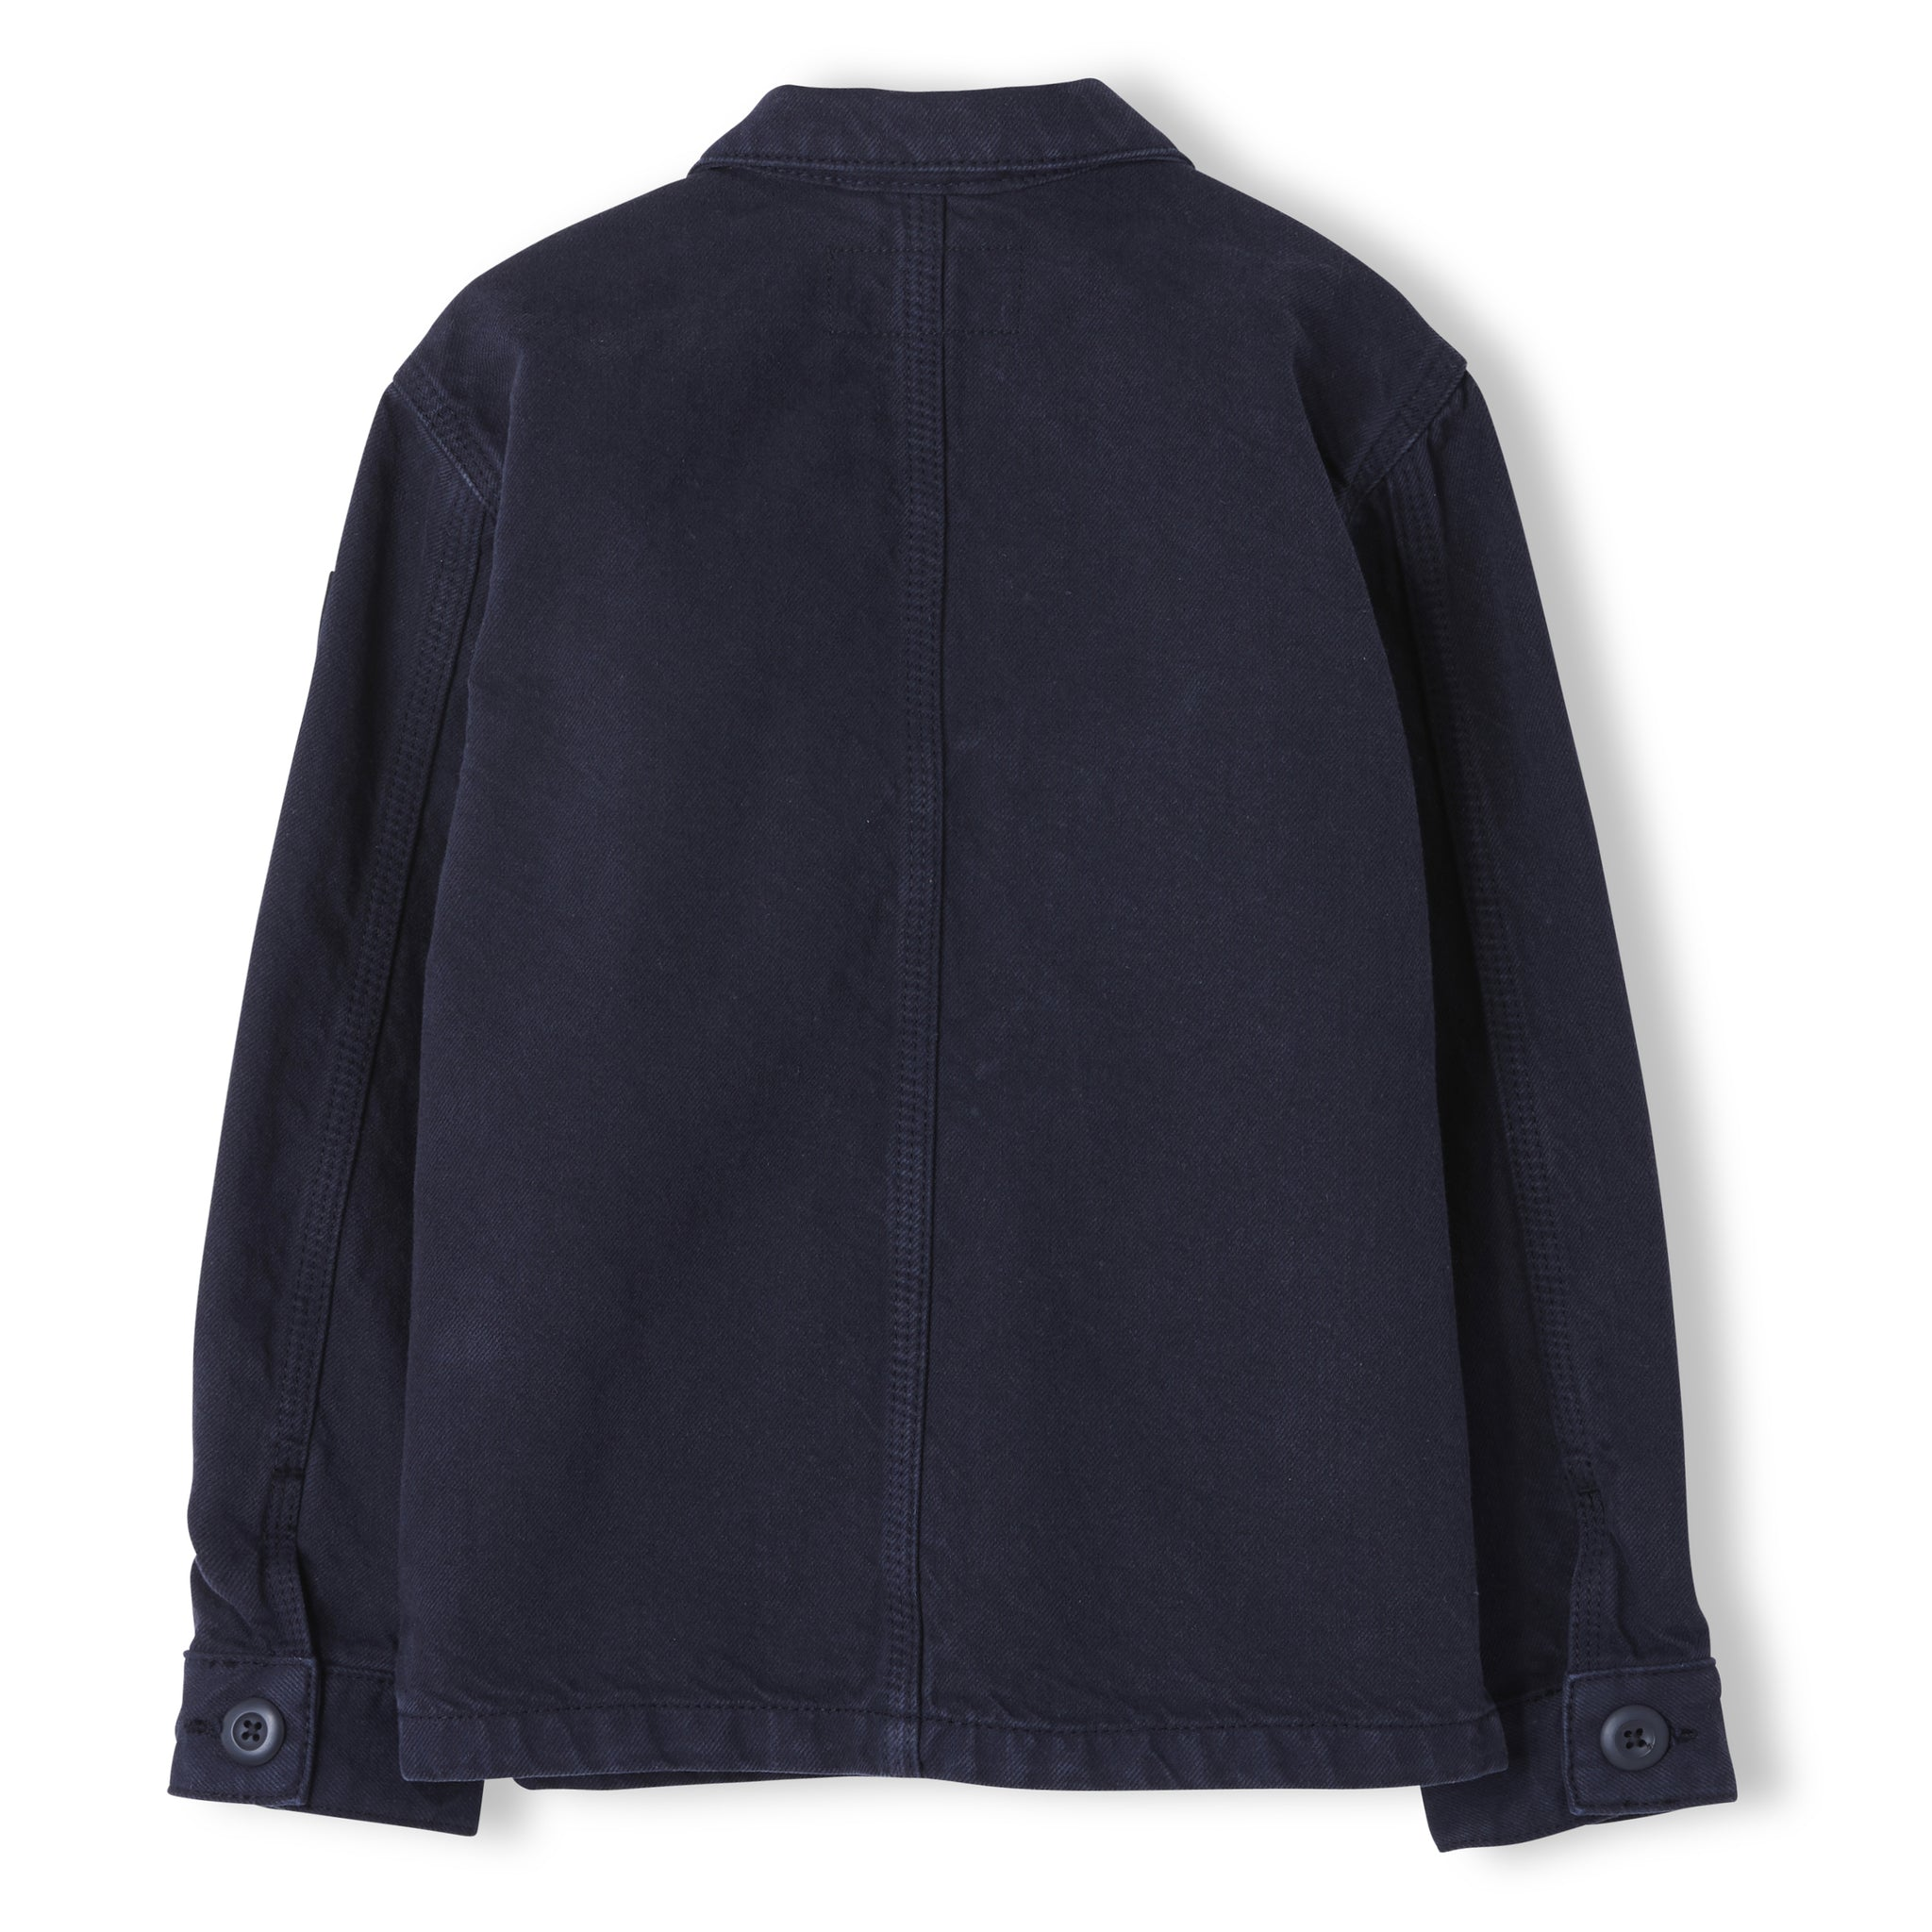 WARREN Super Navy - Unisex Woven Multipocket Jacket 2